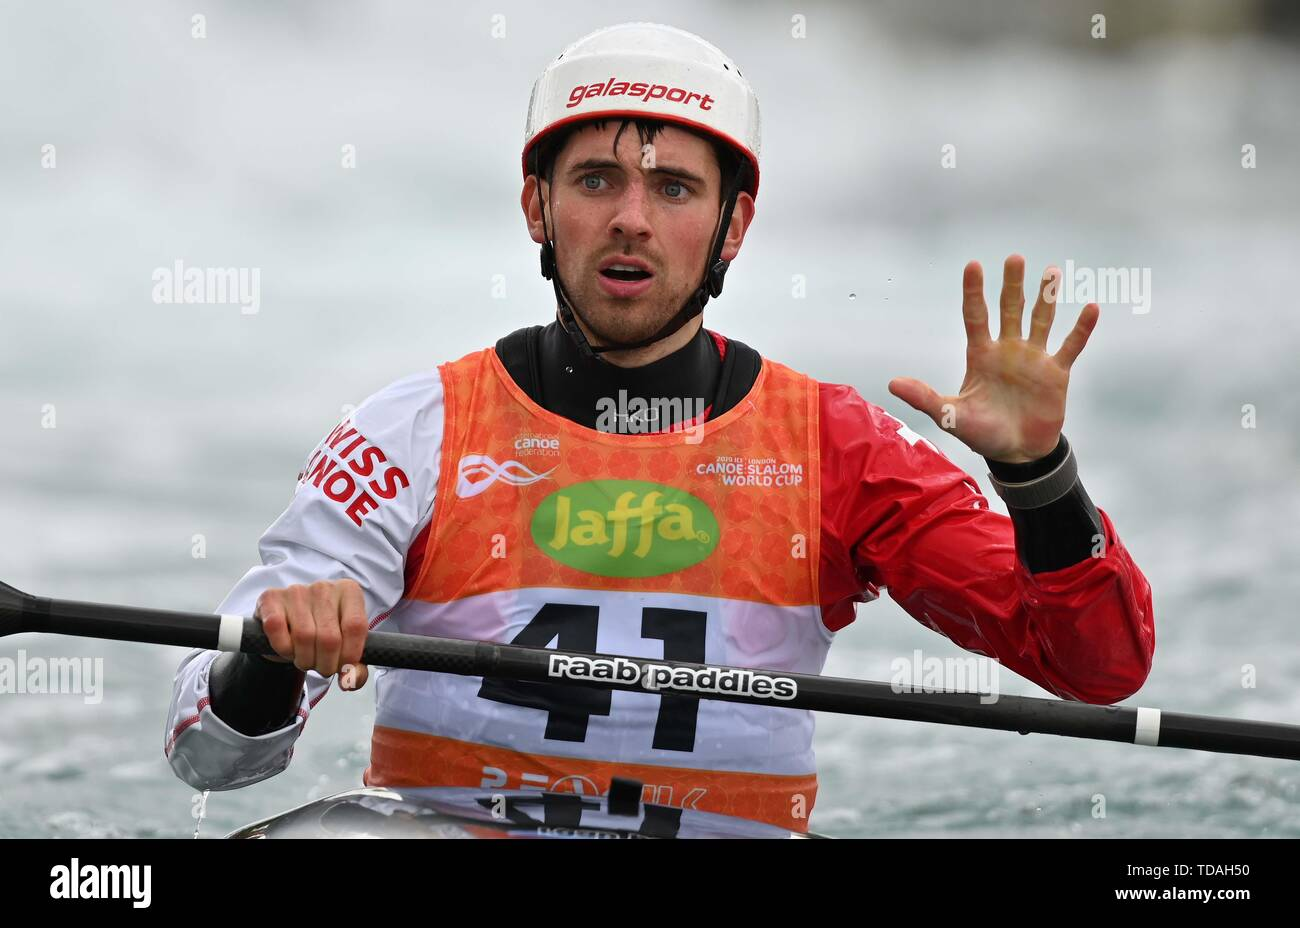 Lee Valley, Hertforshire, UK. 14th June, 2018.  Manual Munsch (SUI) celebrates at the end of his run. 2019 ICF London canoe slalom world cup. Lee valley white water centre. Mens K1 Kayak. Hertfordshire. UK. 14/06/2019. Credit: Sport In Pictures/Alamy Live News Stock Photo